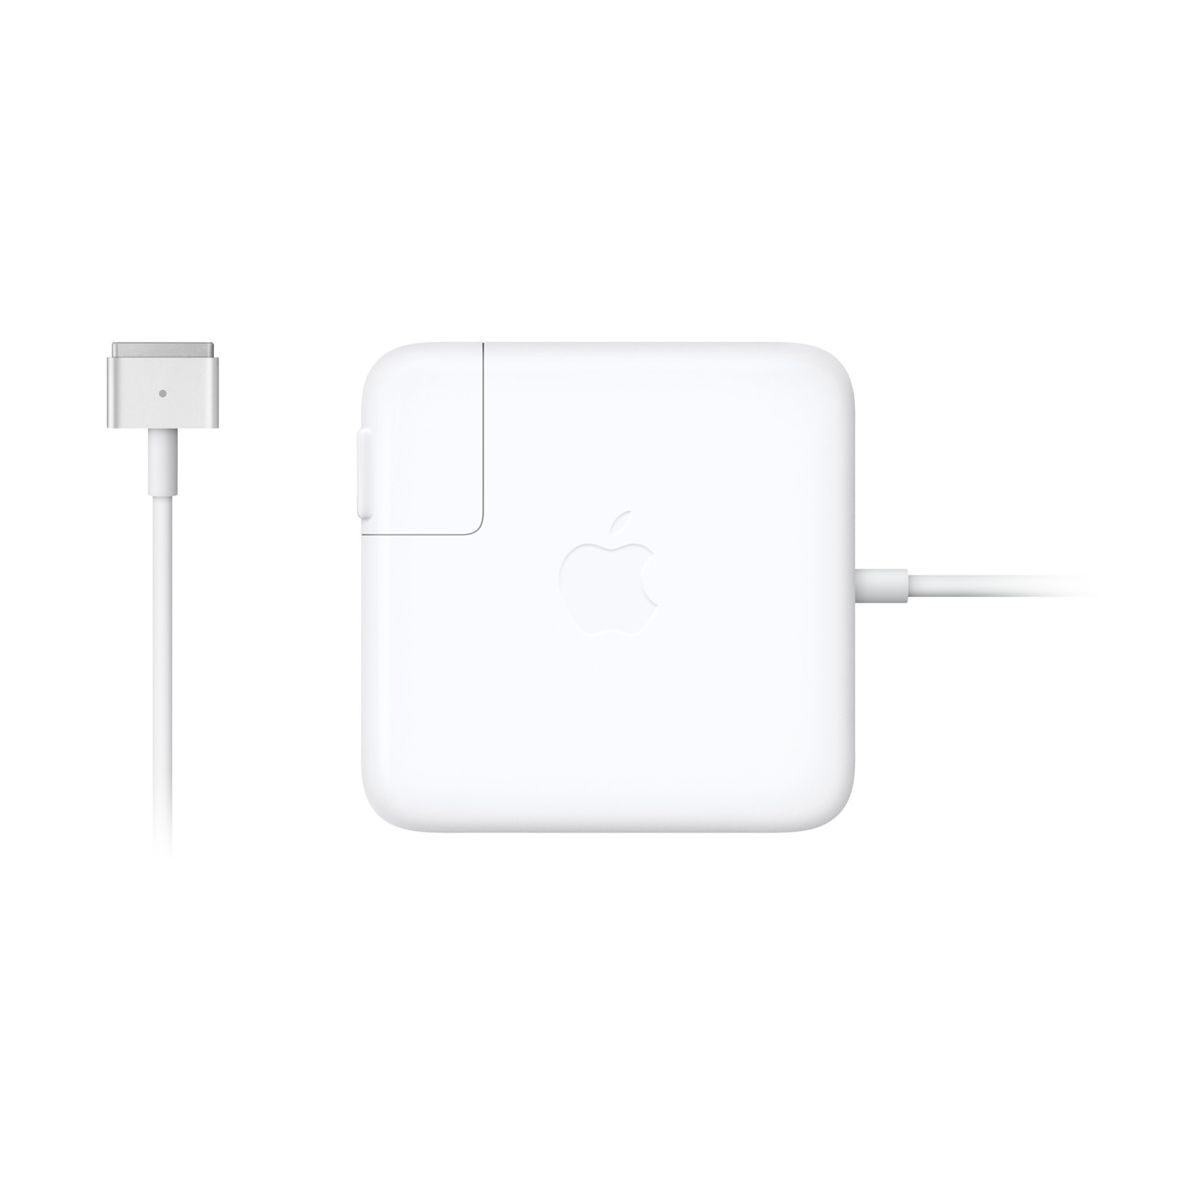 Alim apple magsafe 2 60w mbp 13 retina